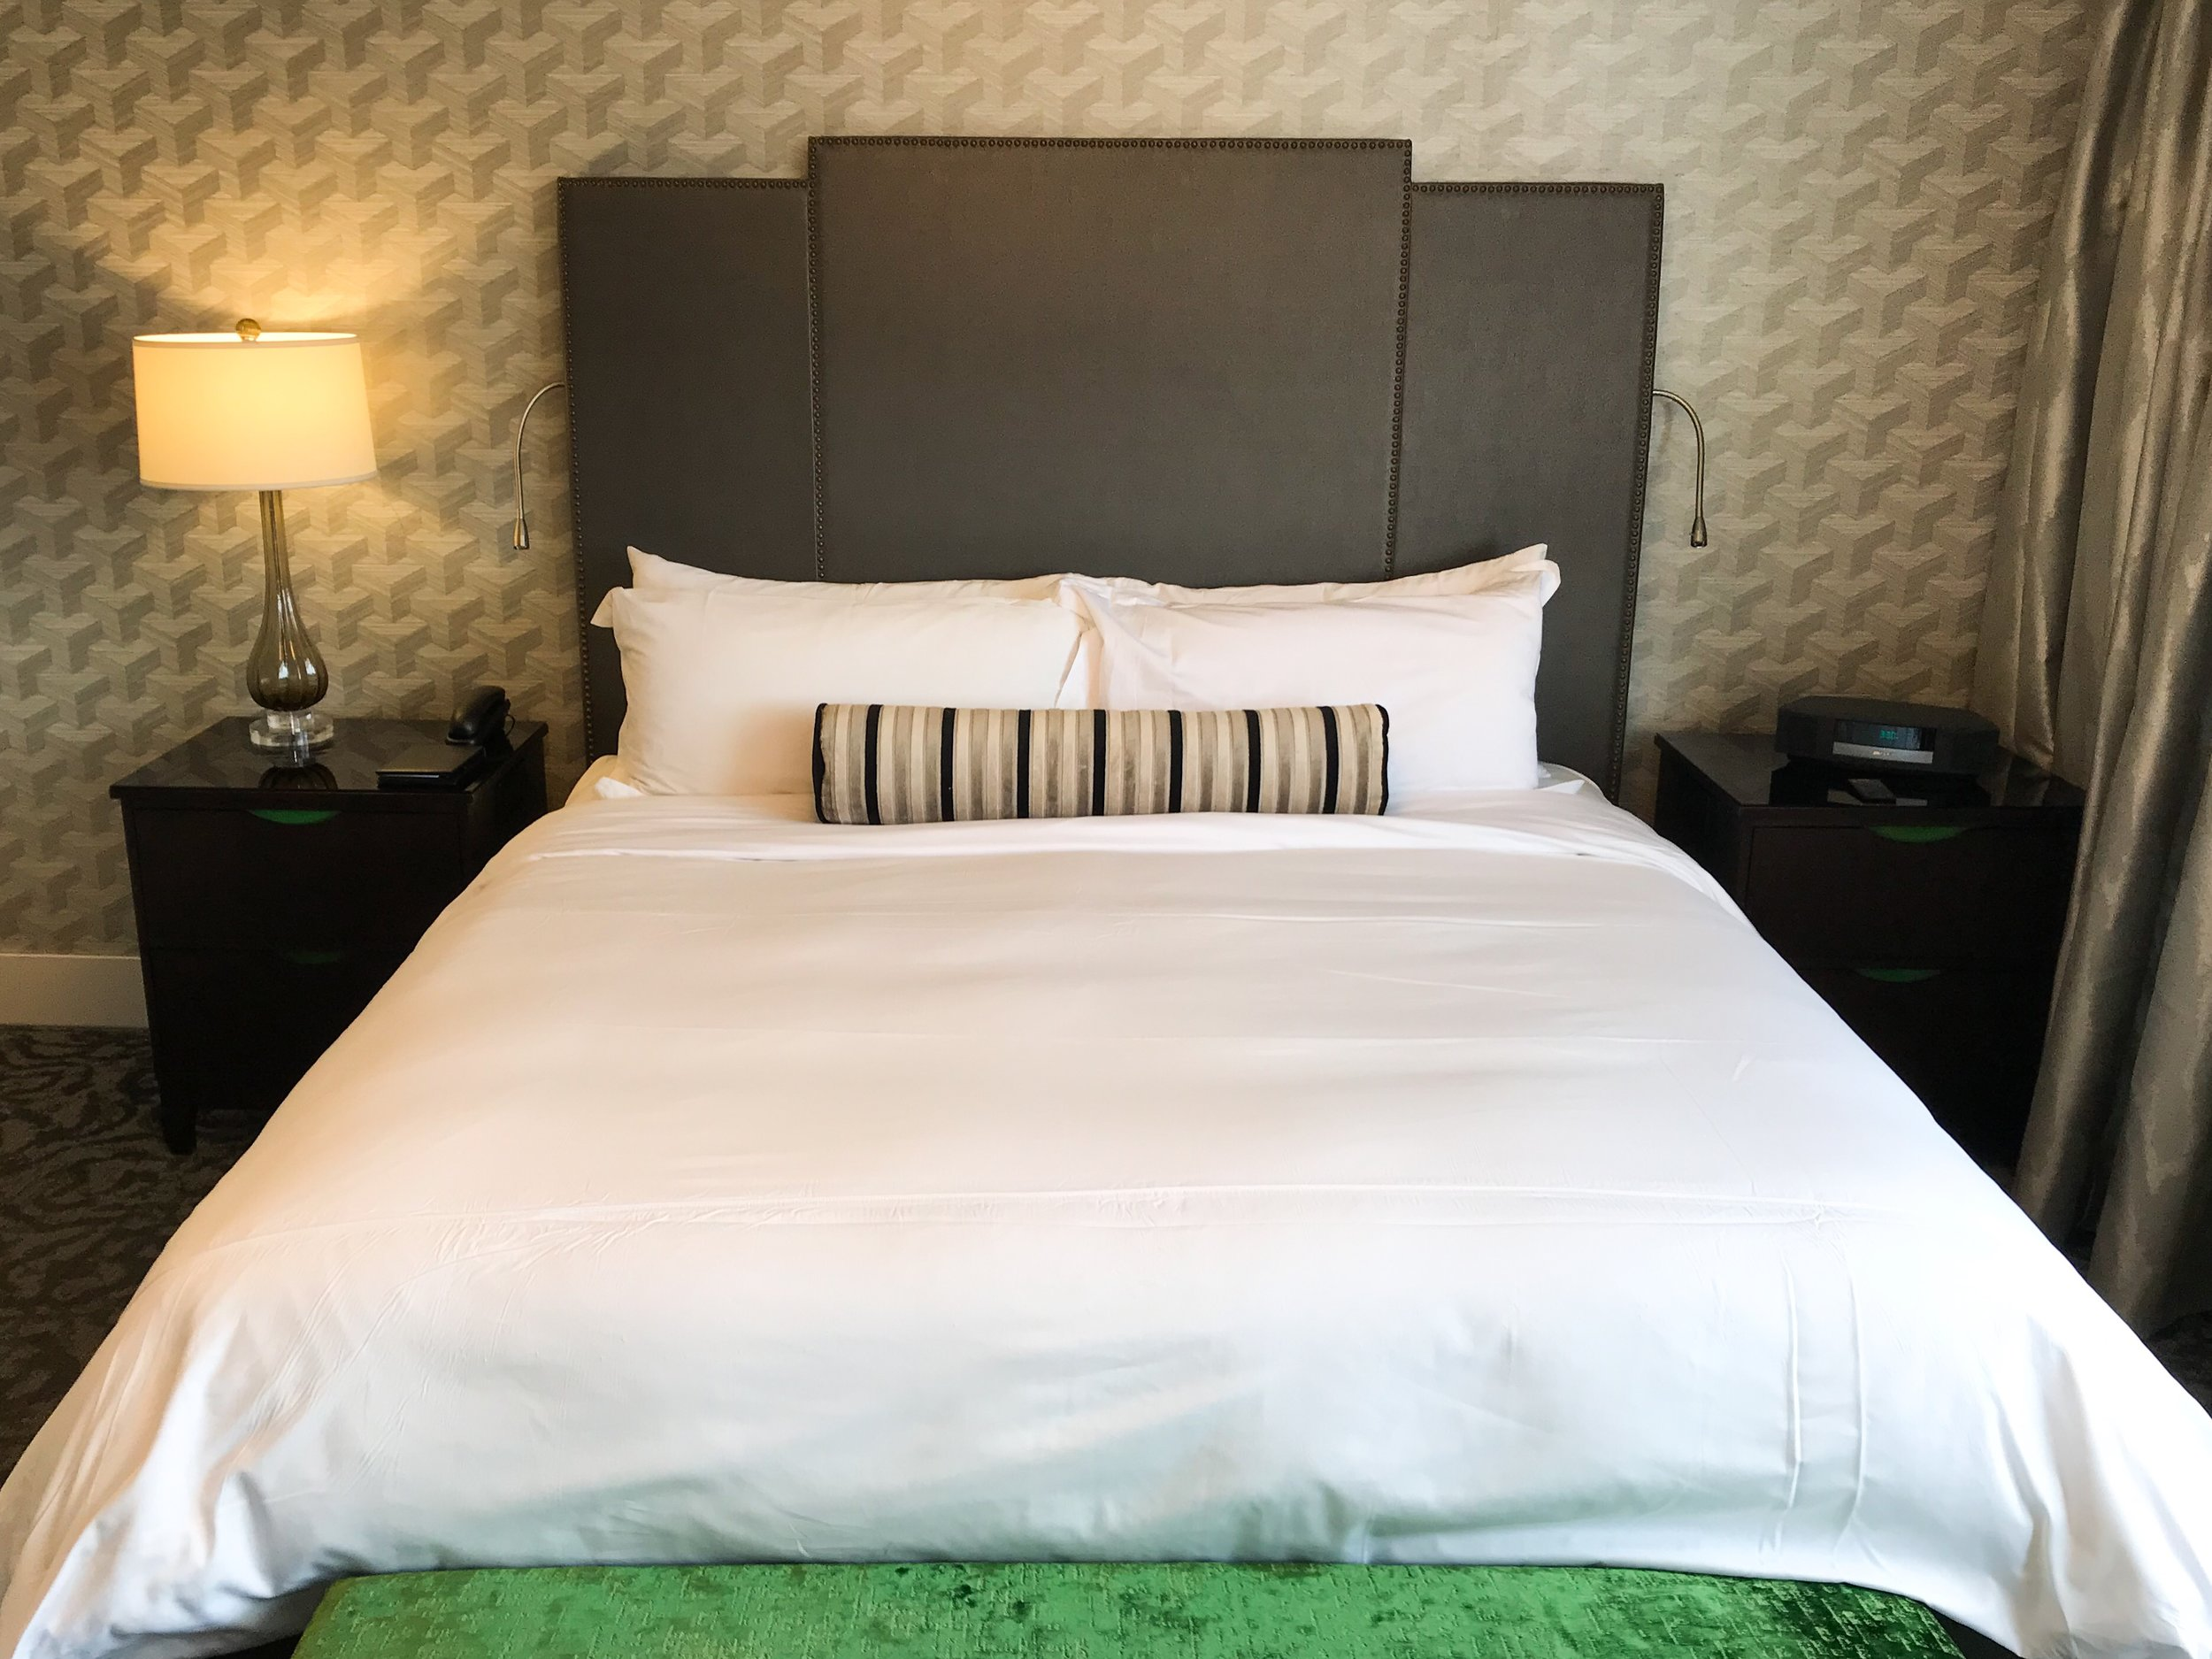 Each side of the bed had reading lights attached.